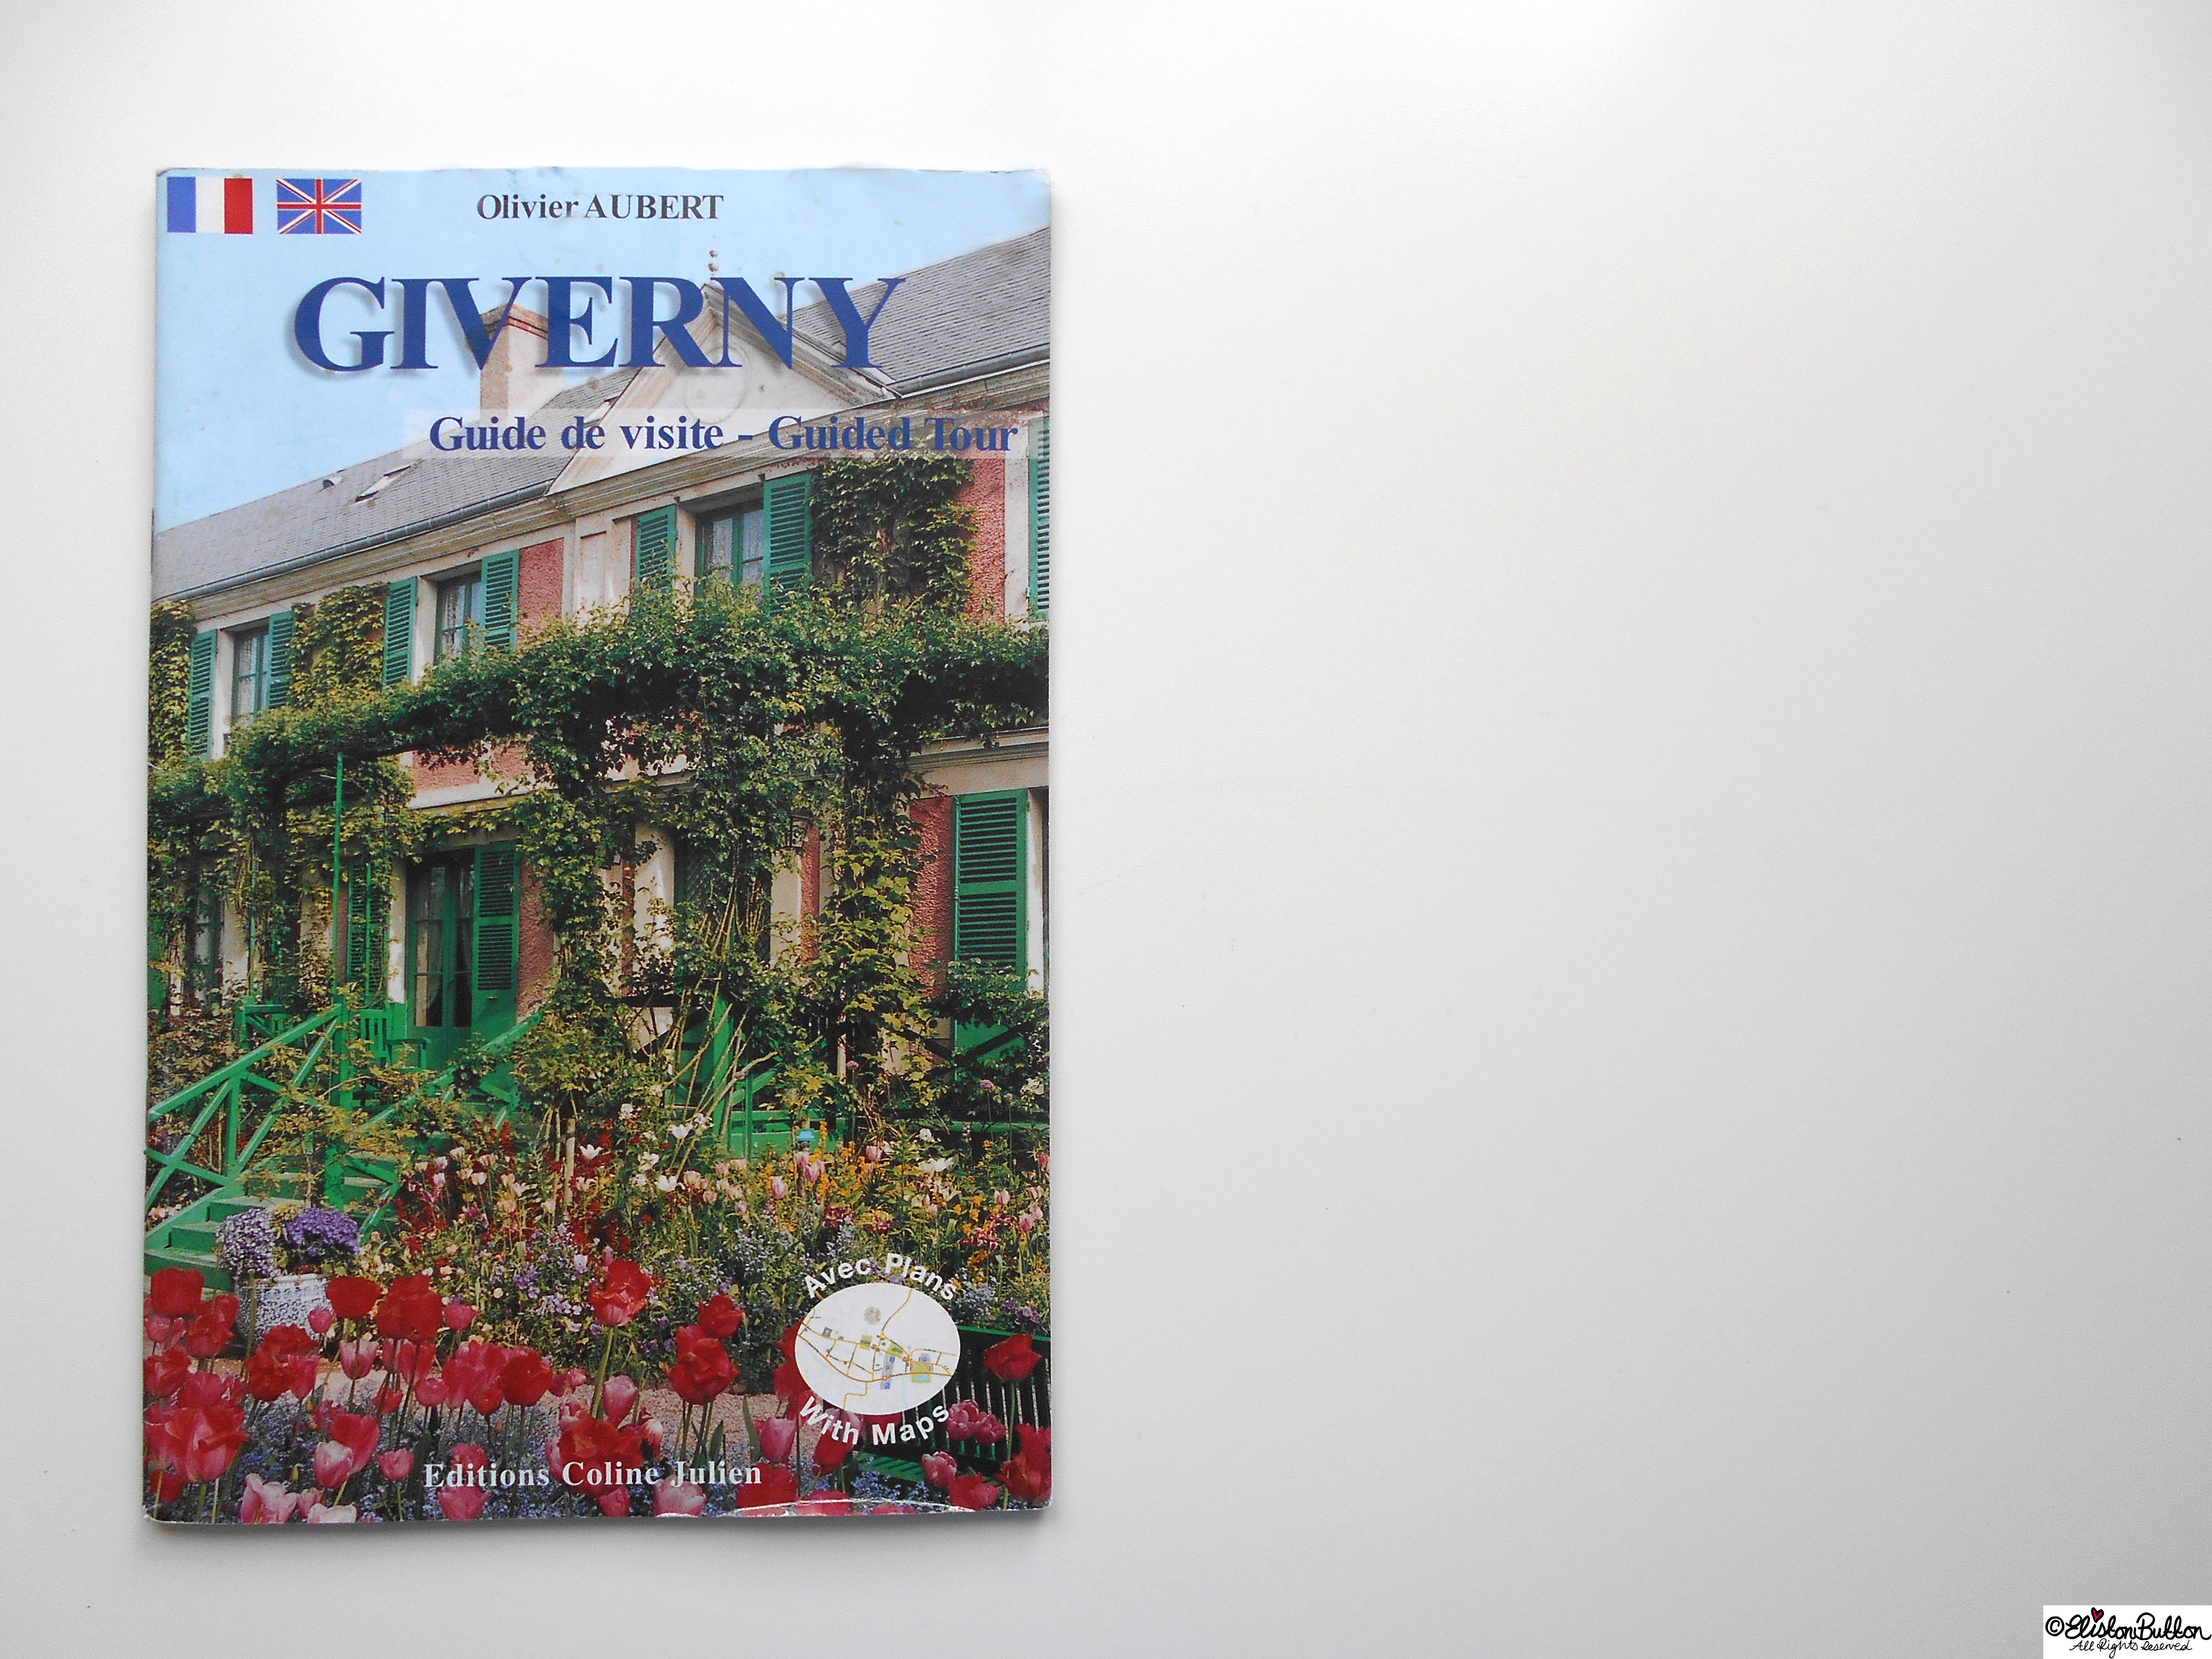 Giverny Guide Book - Gifts from France at www.elistonbutton.com - Eliston Button - That Crafty Kid – Art, Design, Craft & Adventure.